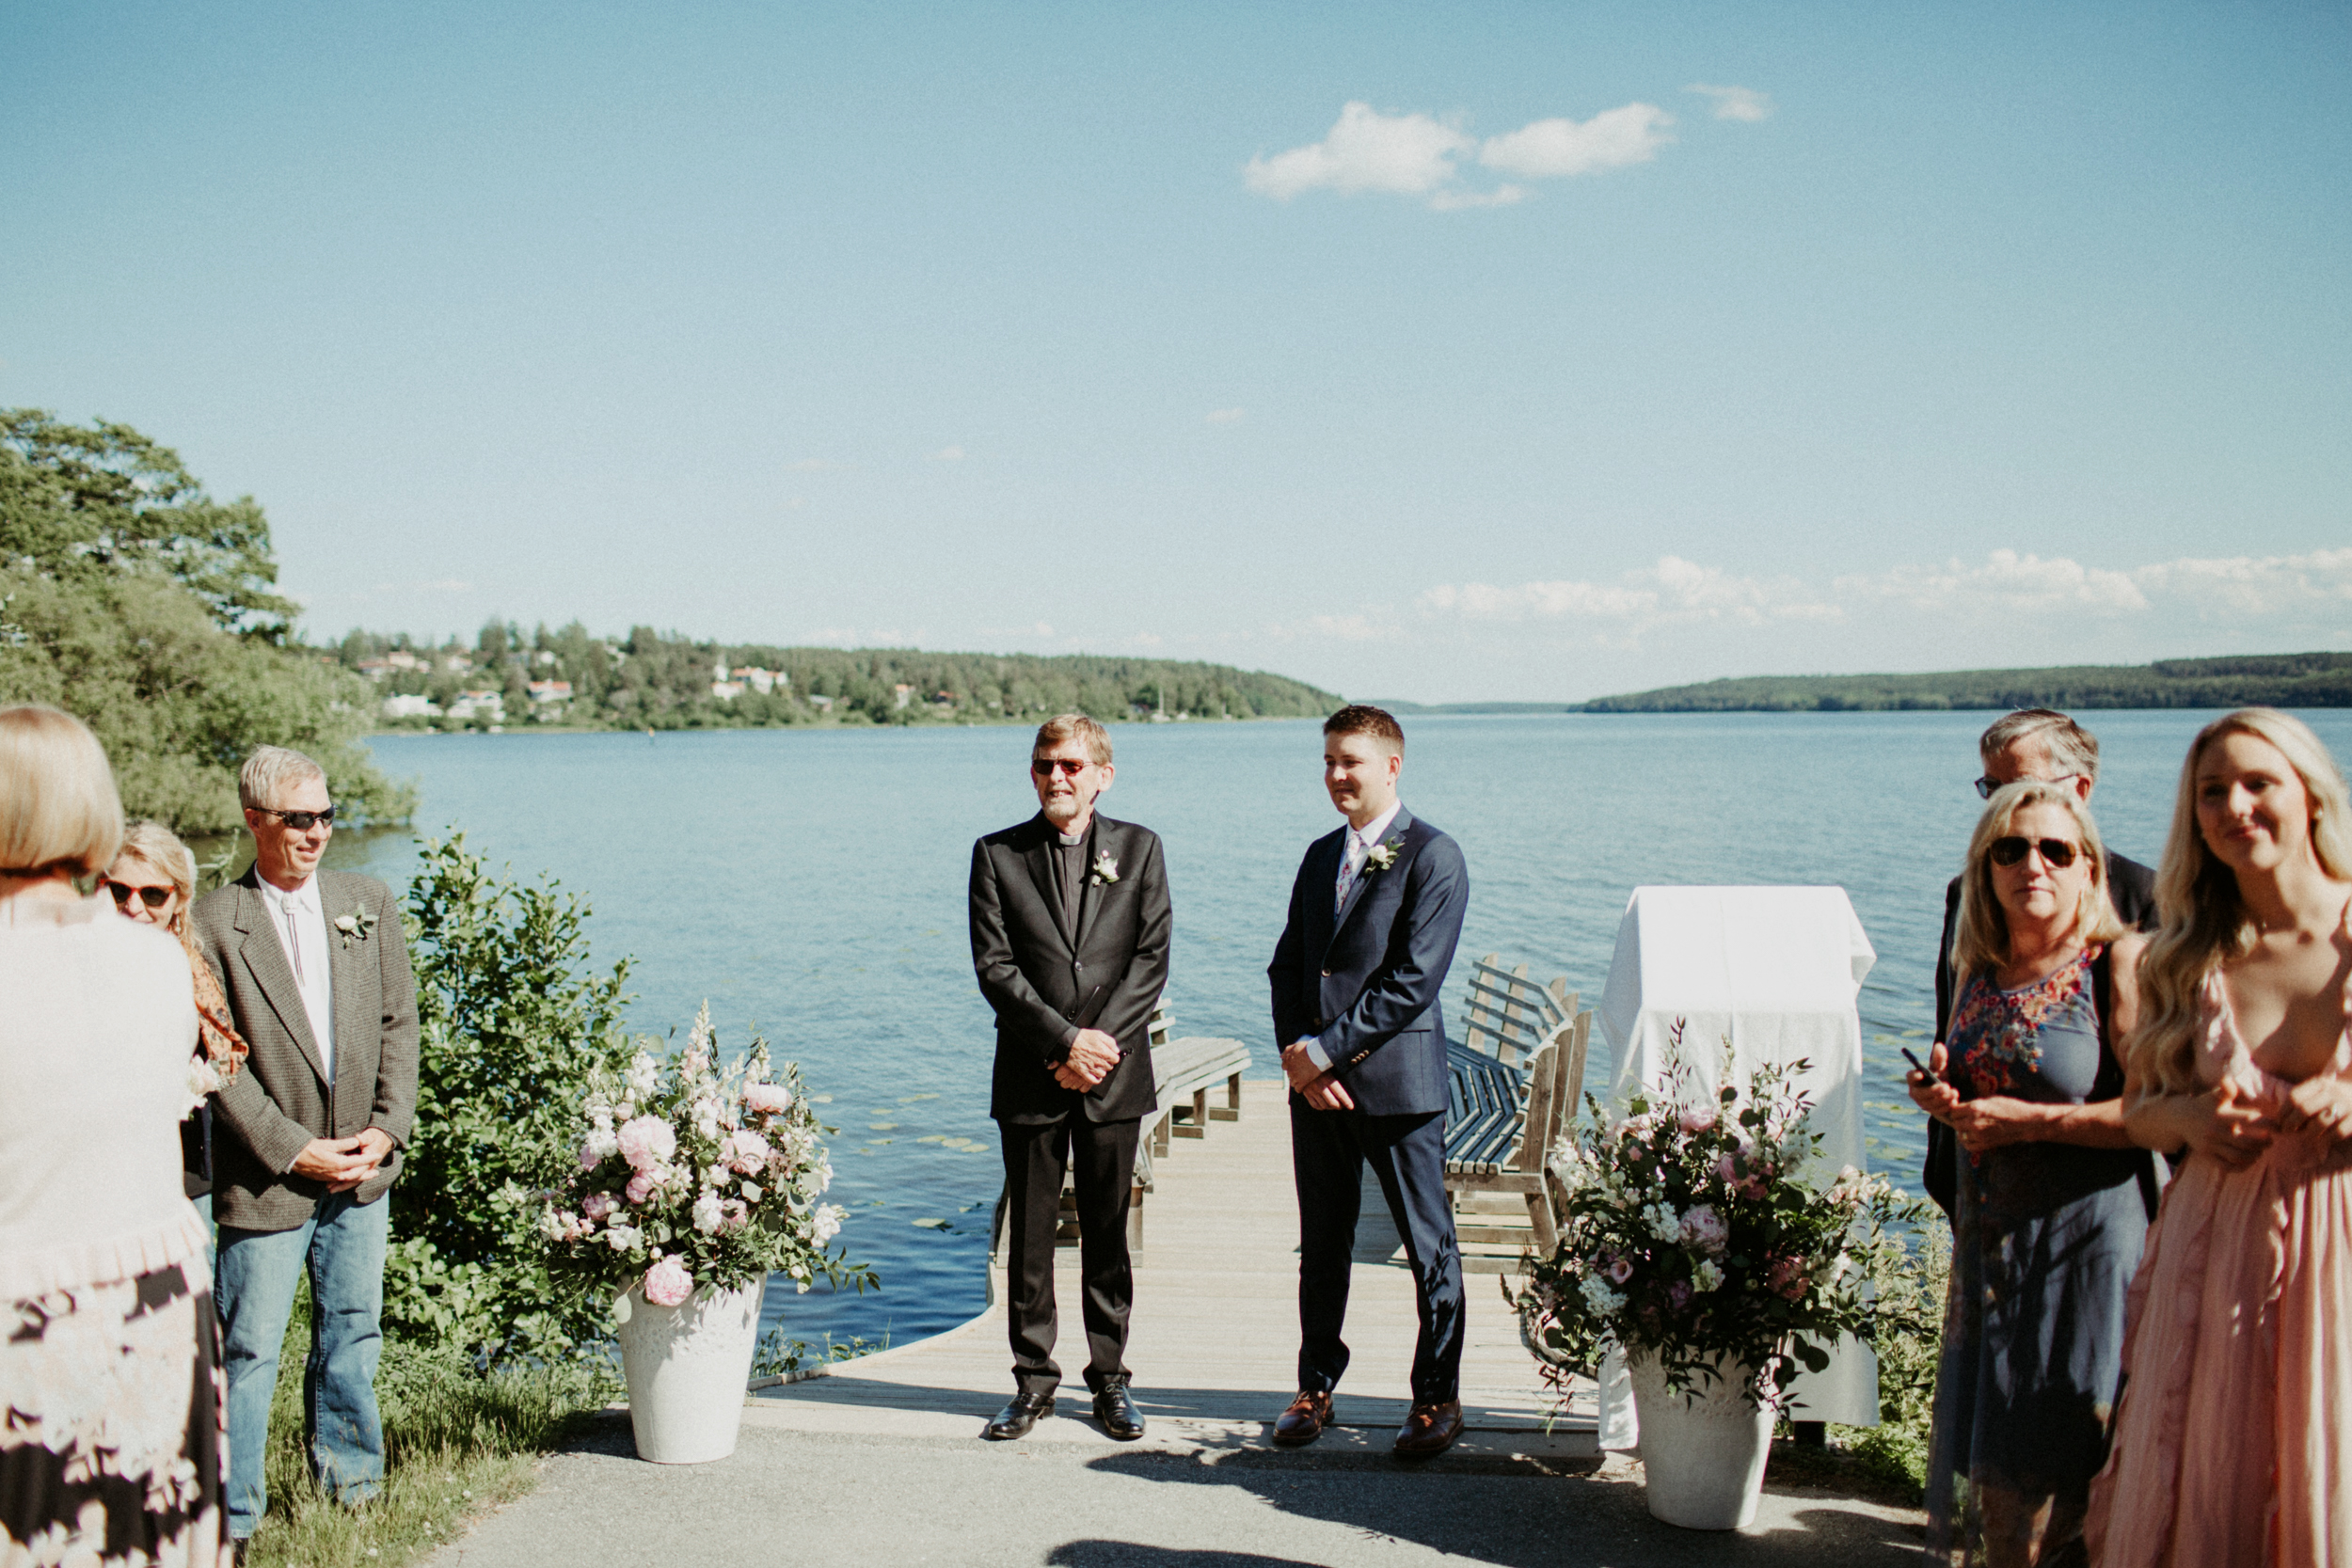 sigtuna-sweden-wedding_m_e-66.jpg